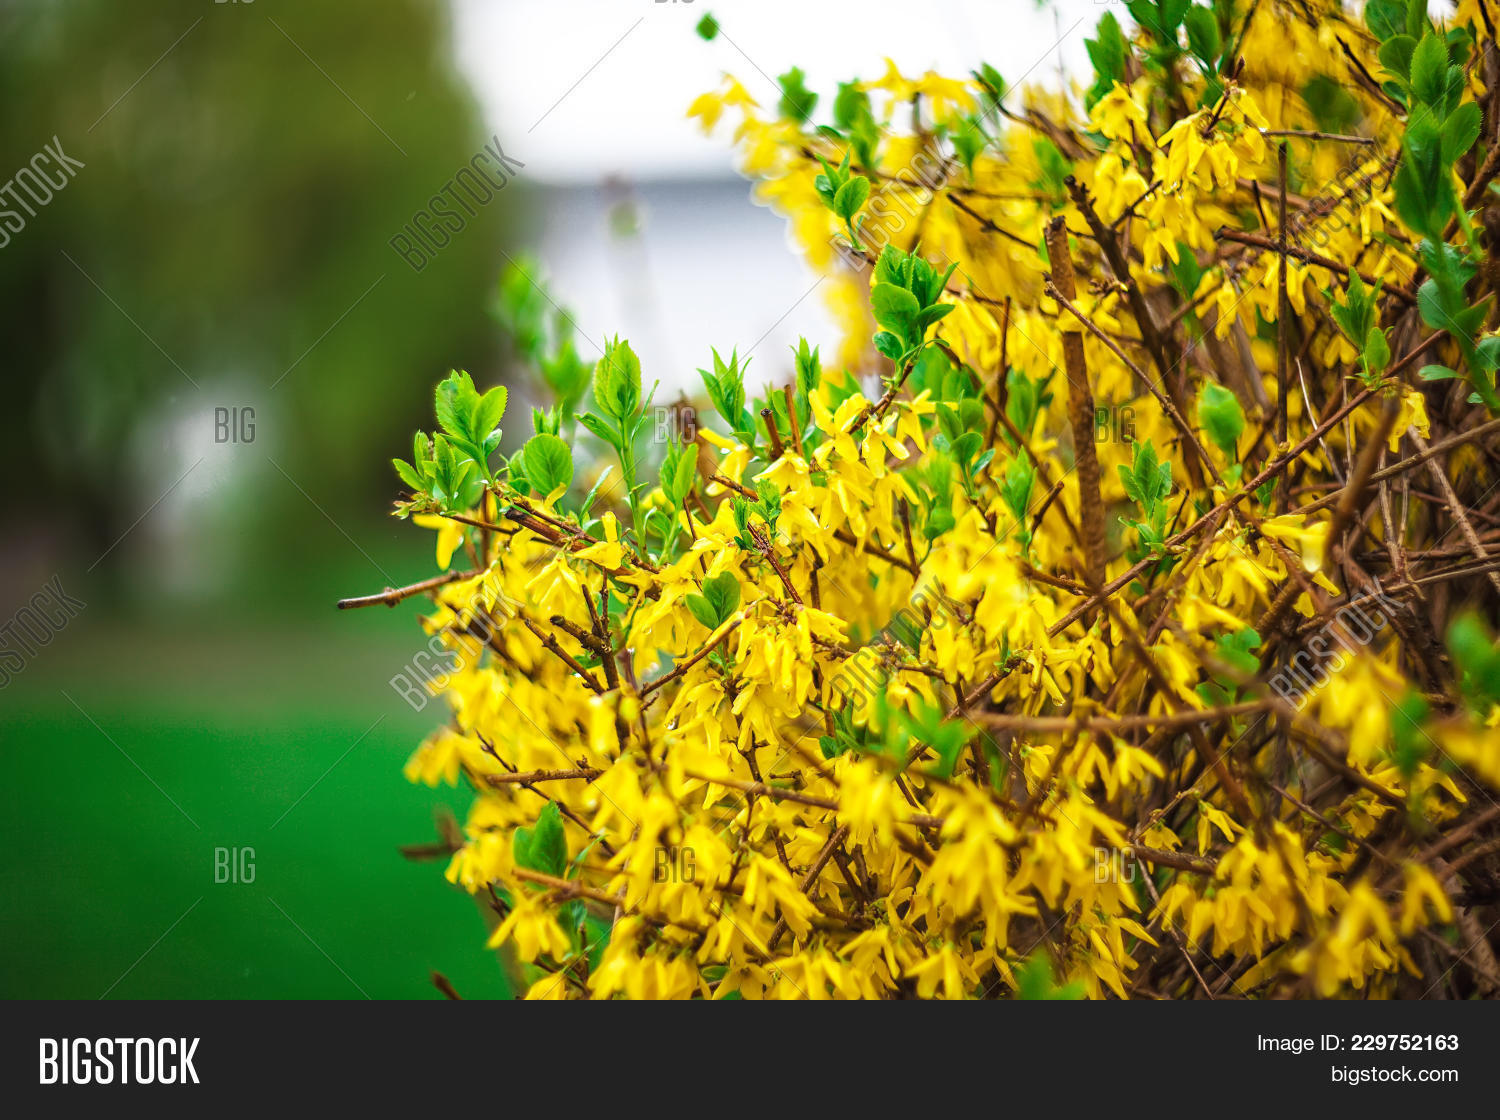 Ellow Forsythia Bush Image Photo Free Trial Bigstock